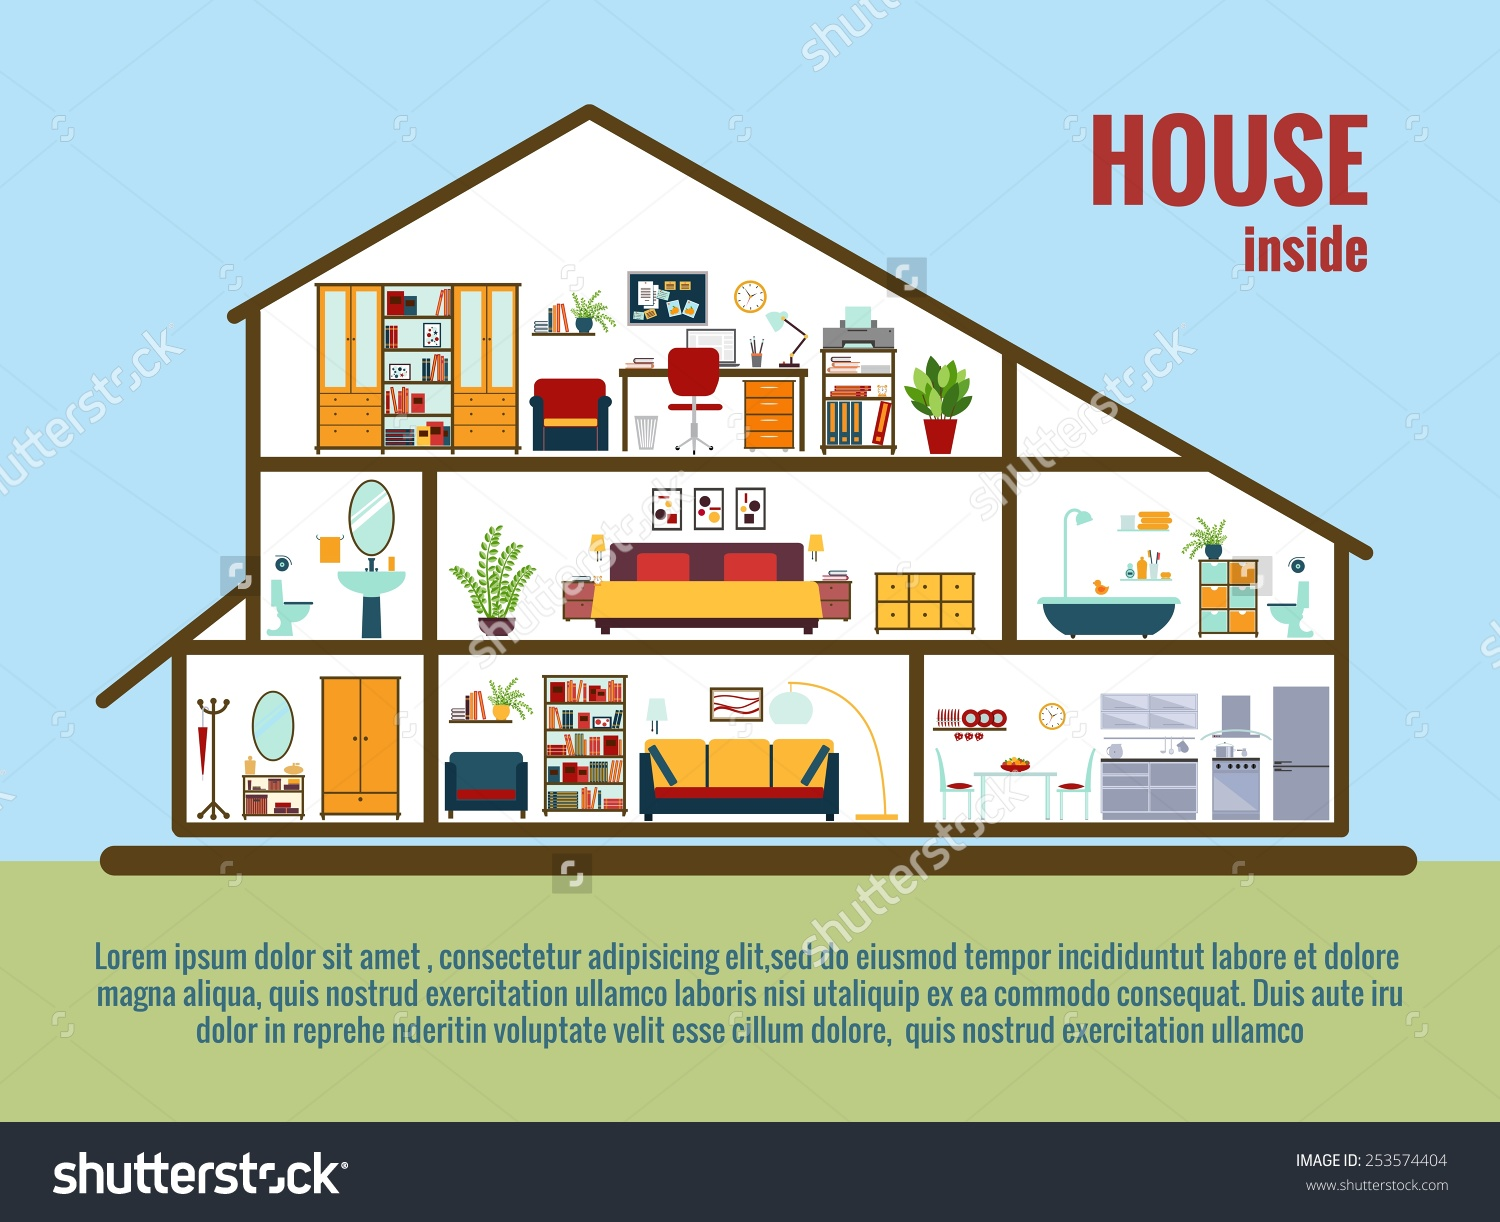 Clipart of rooms inside the house clipground for House plan pictures inside house